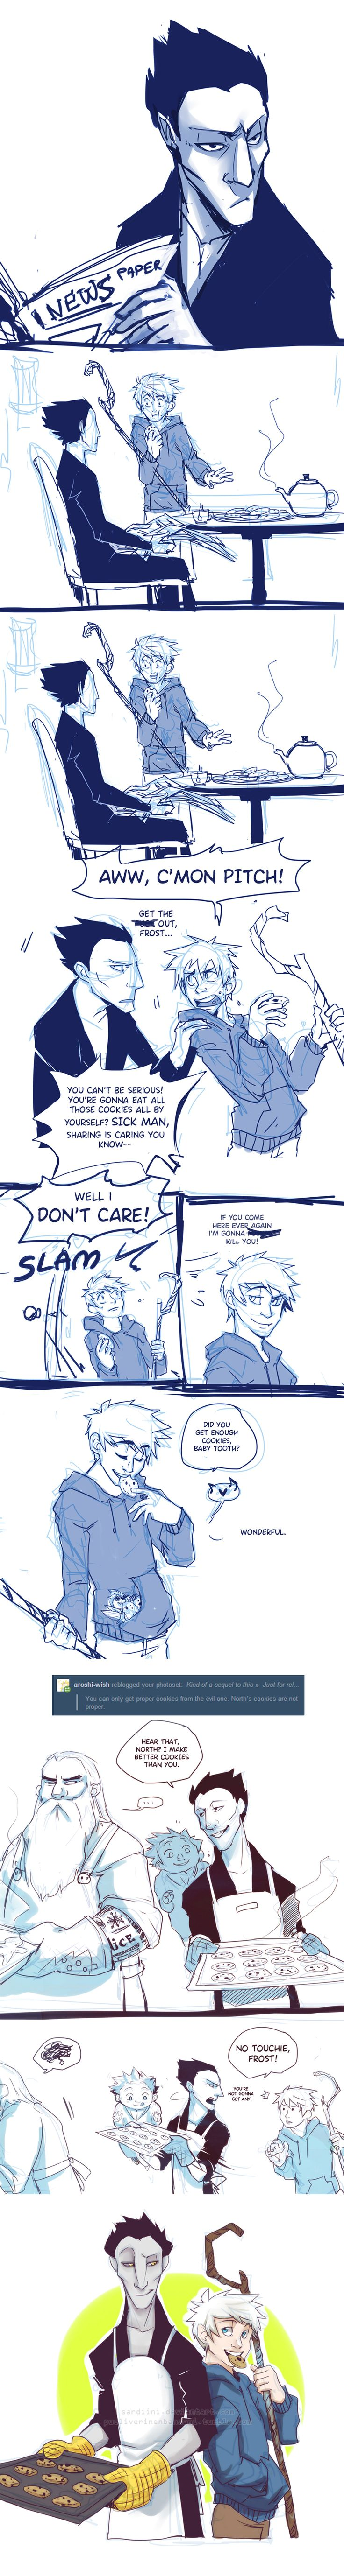 ROTG doodles and sketches - COOKIES by ~Sardiini on deviantART